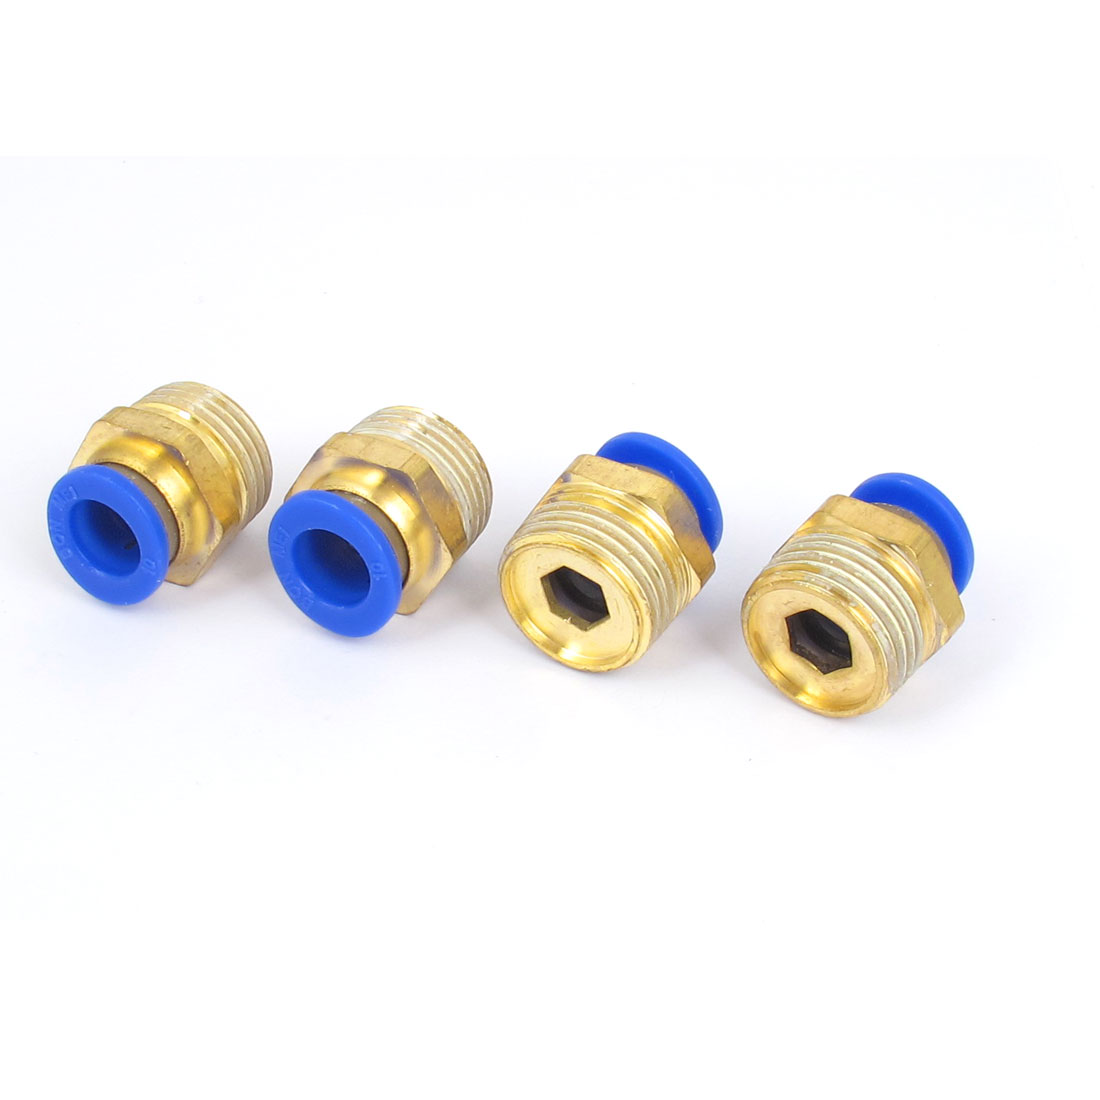 1/2BSP Male Thread Pneumatic Quick Air Fitting Coupler Connector 4pcs